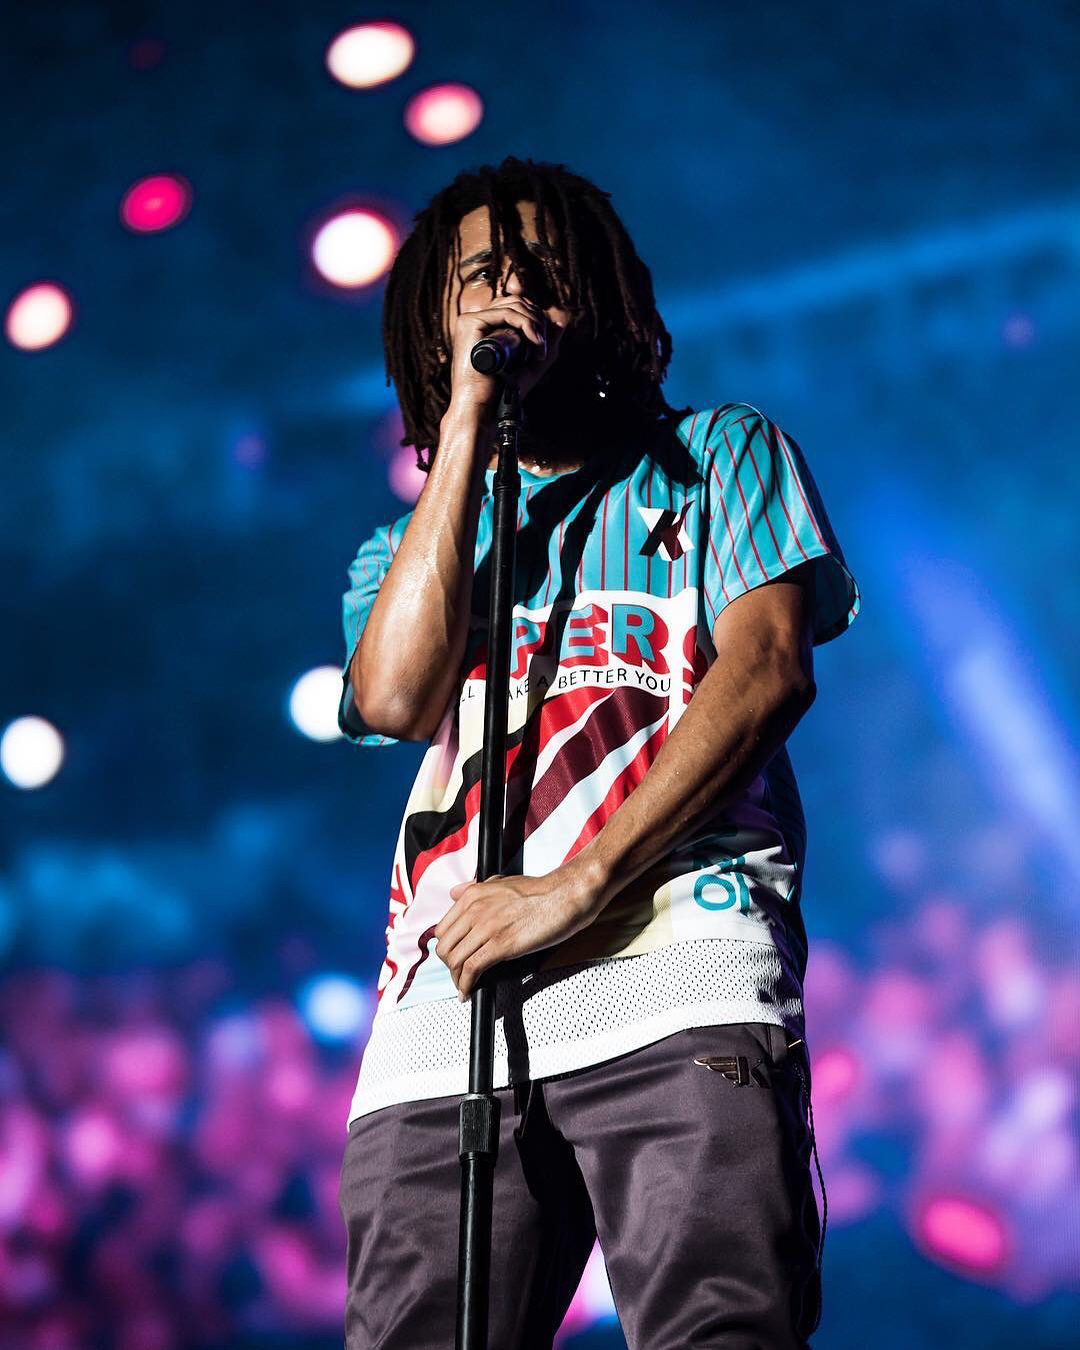 SPOTTED: J. Cole Performing in Miami Sporting Kenzo